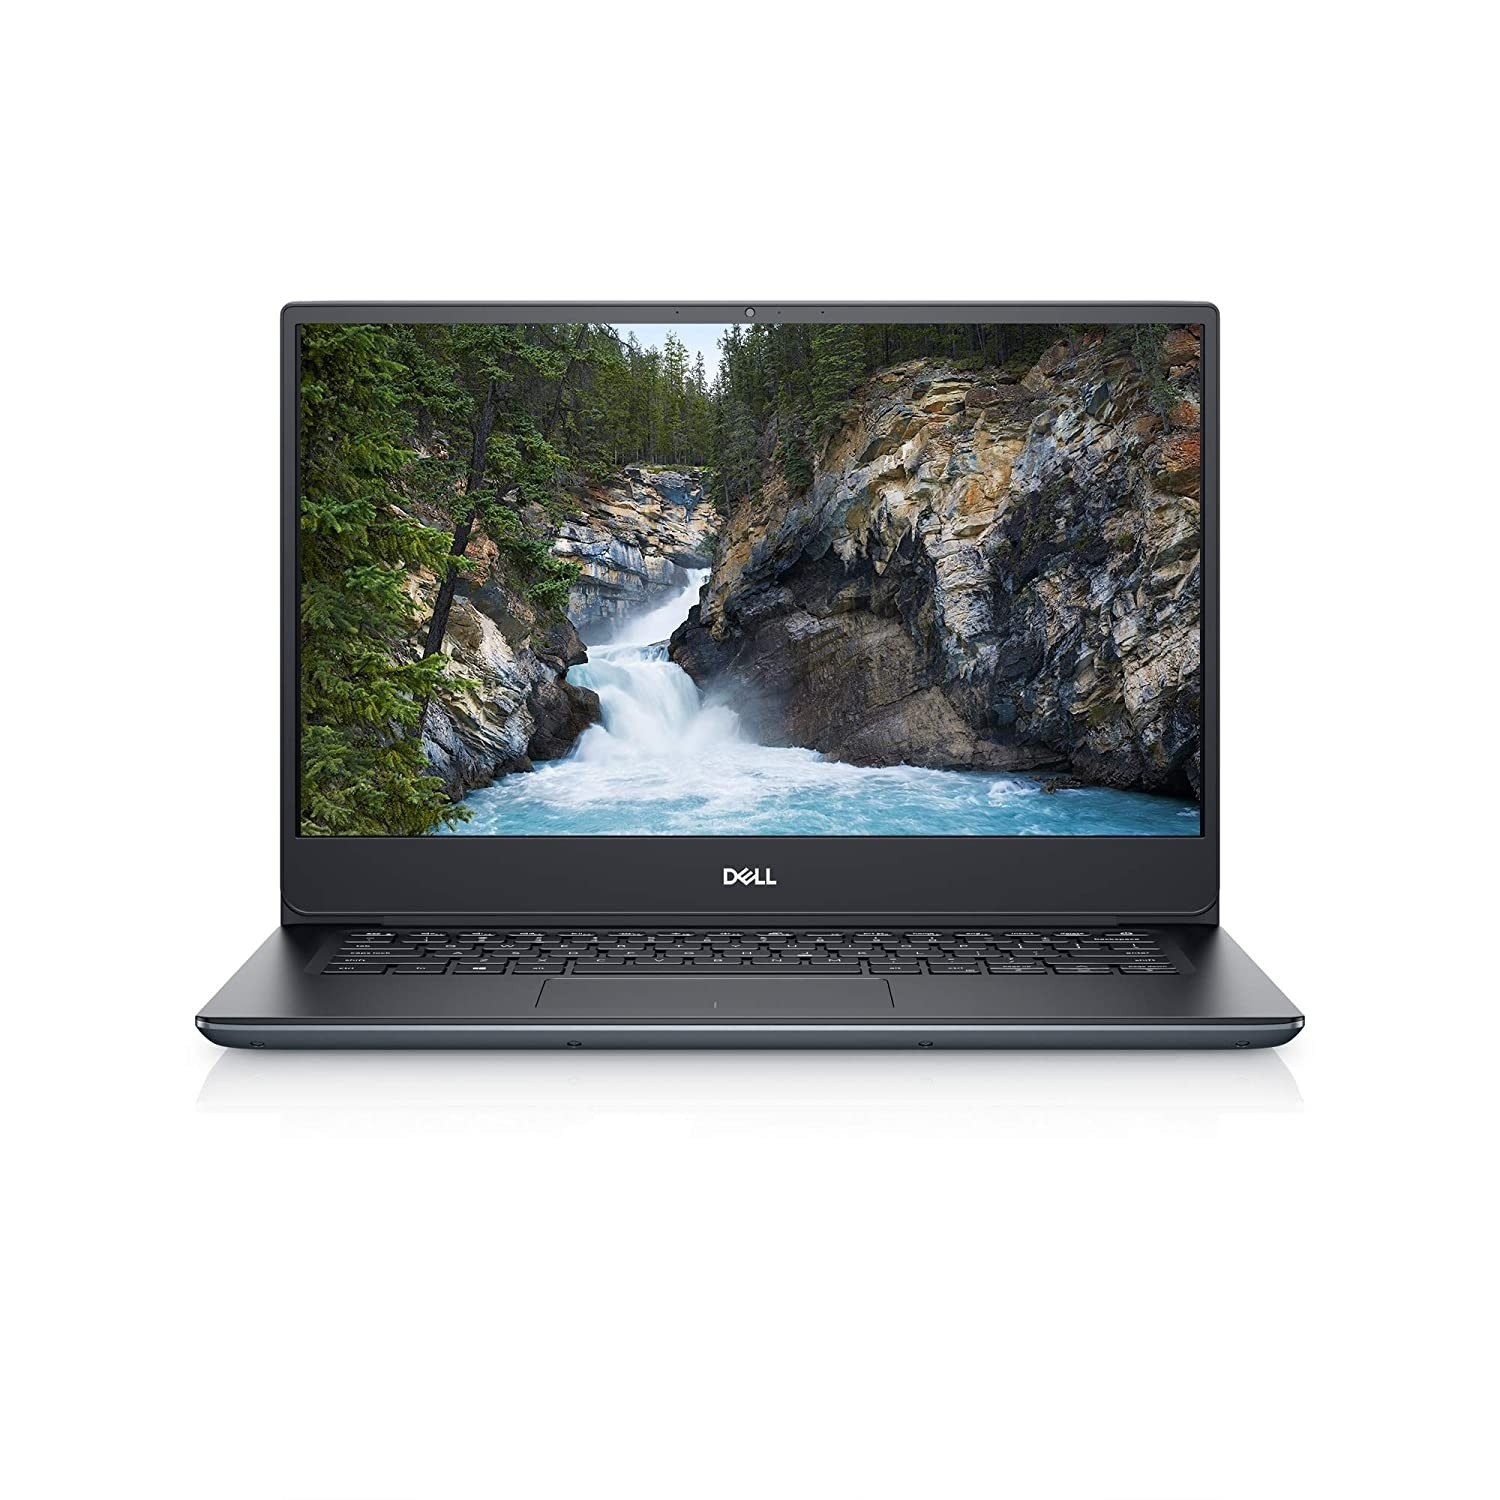 Refurbished laptops & desktops - Refurbished Dell Inspiron 14-5490/Intel Core 10TH Gen i5-10210U/14 Inch FHD/512GB SSD/4GB/Intel UHD Graphics/Win 10 Home/Default